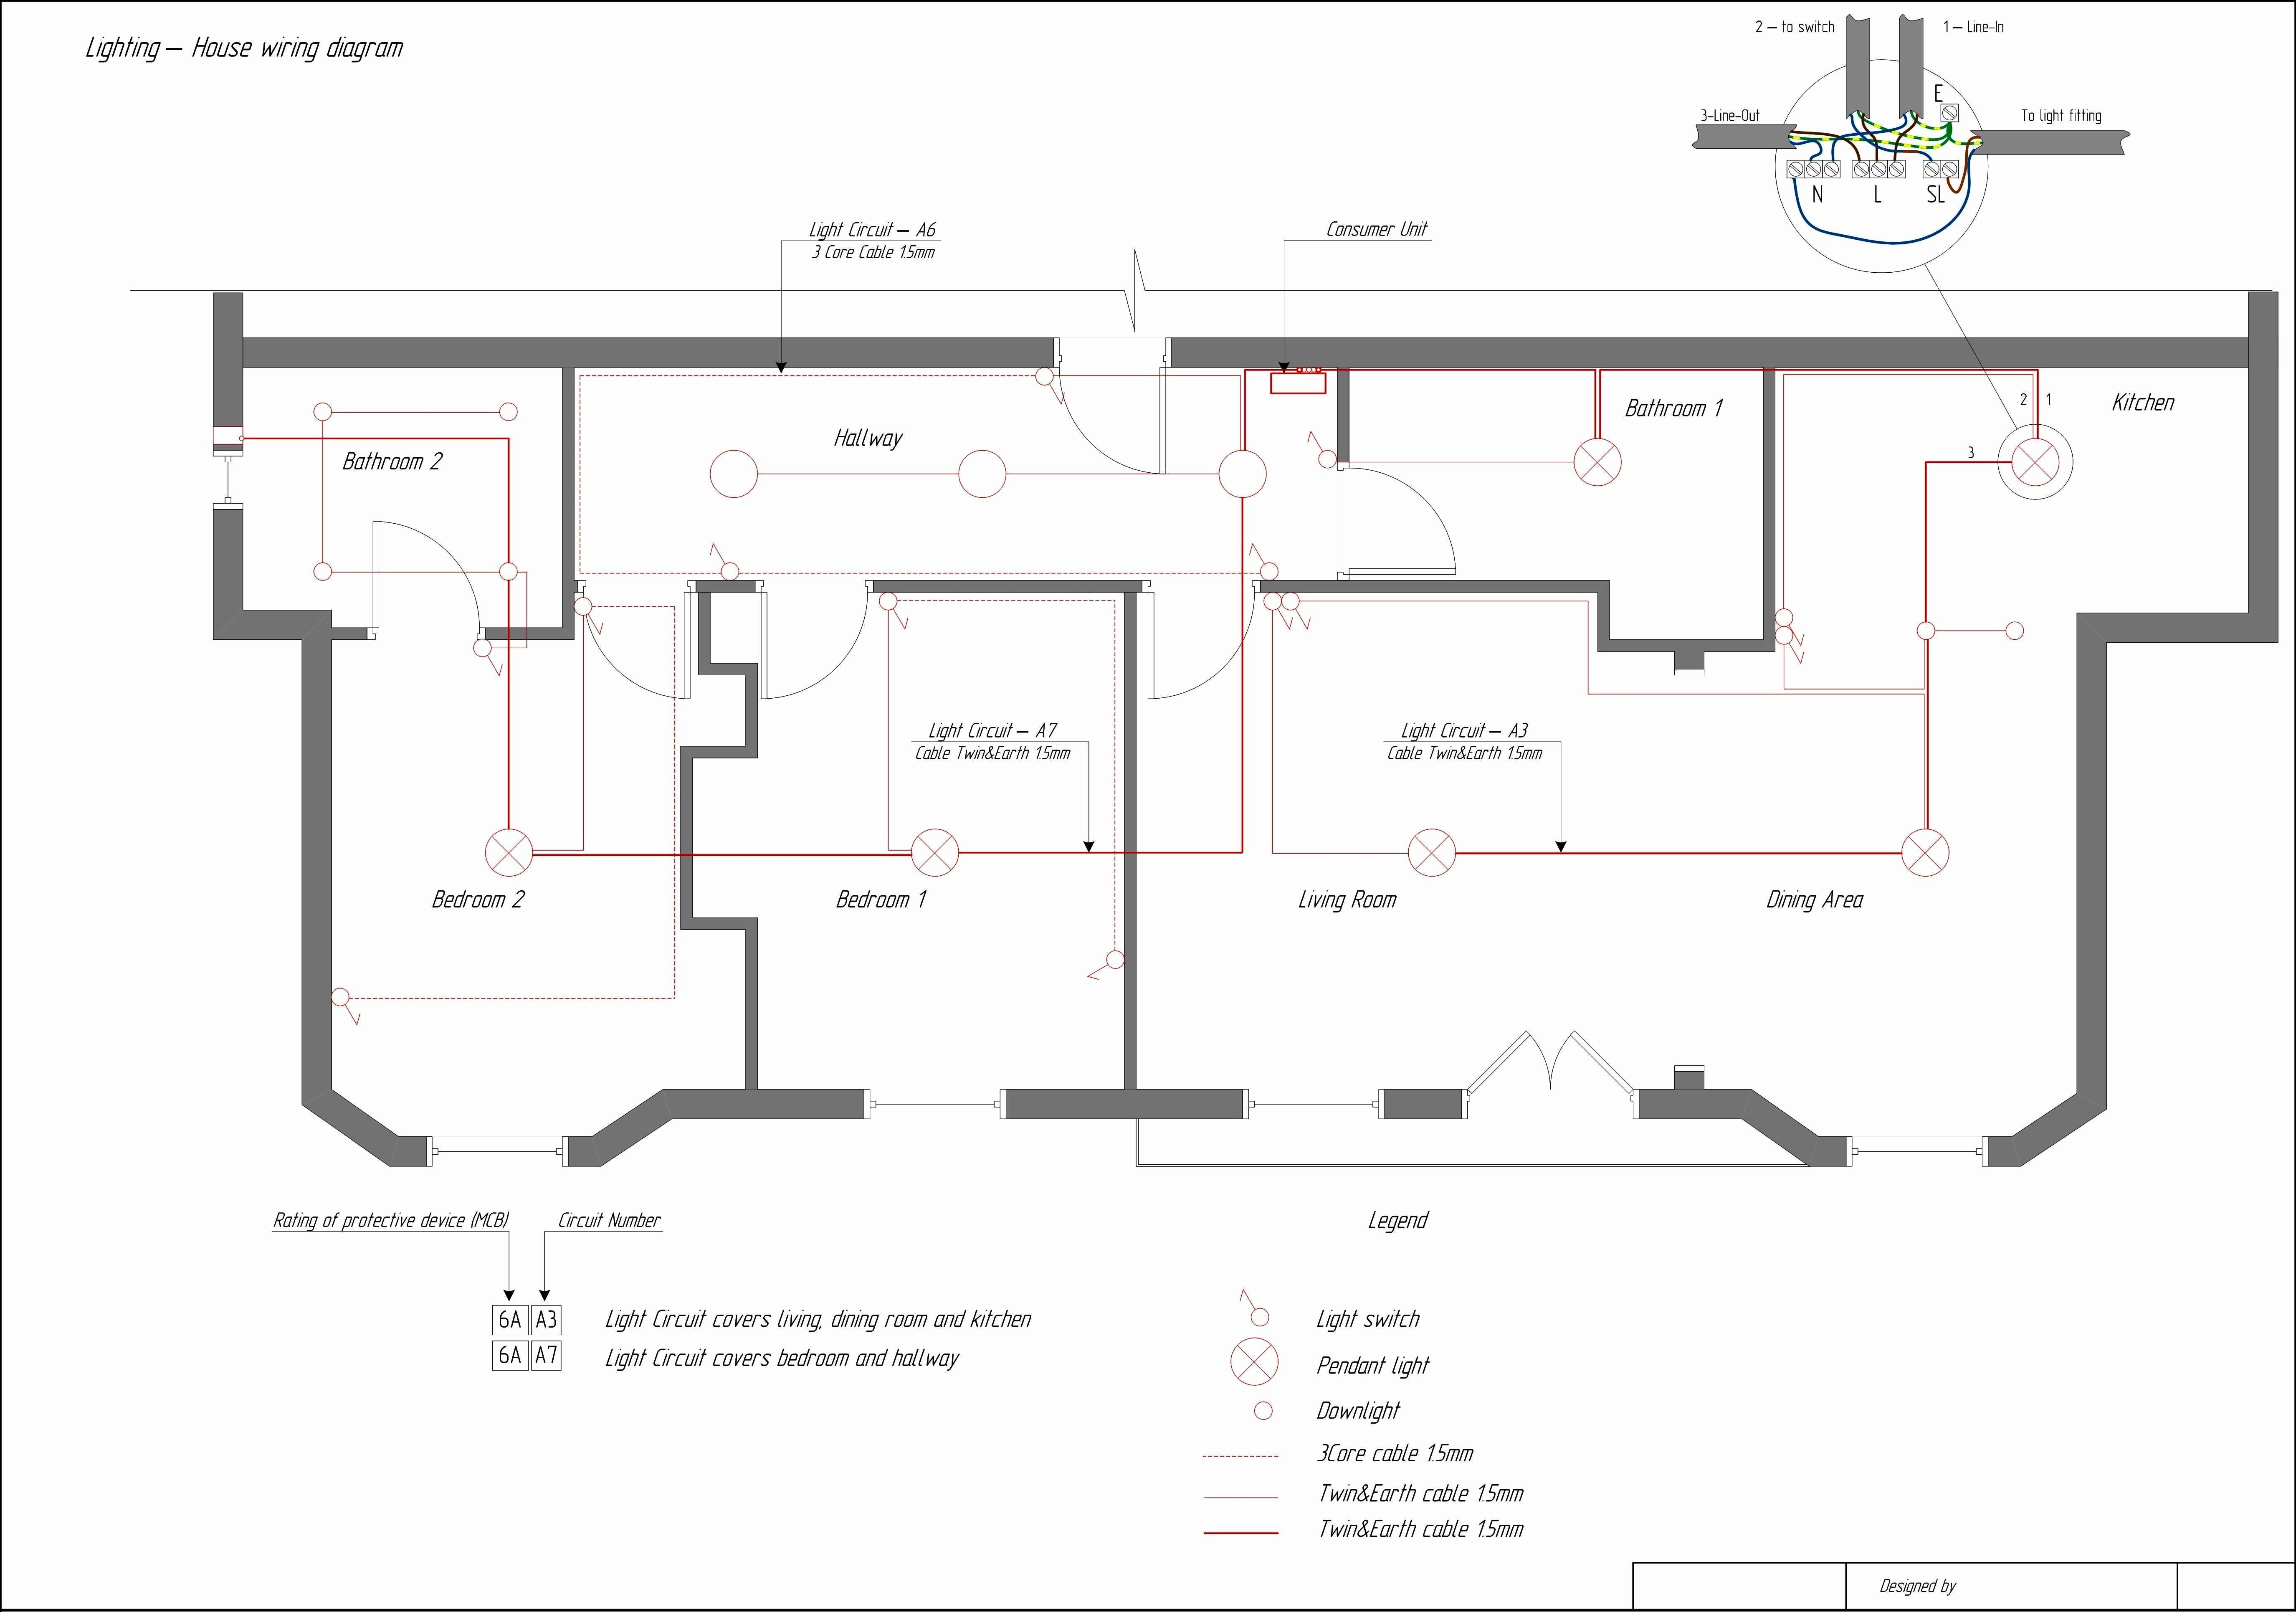 Wiring 3 Prong Schematic - Data Wiring Diagram Site - 3 Prong Outlet Wiring Diagram